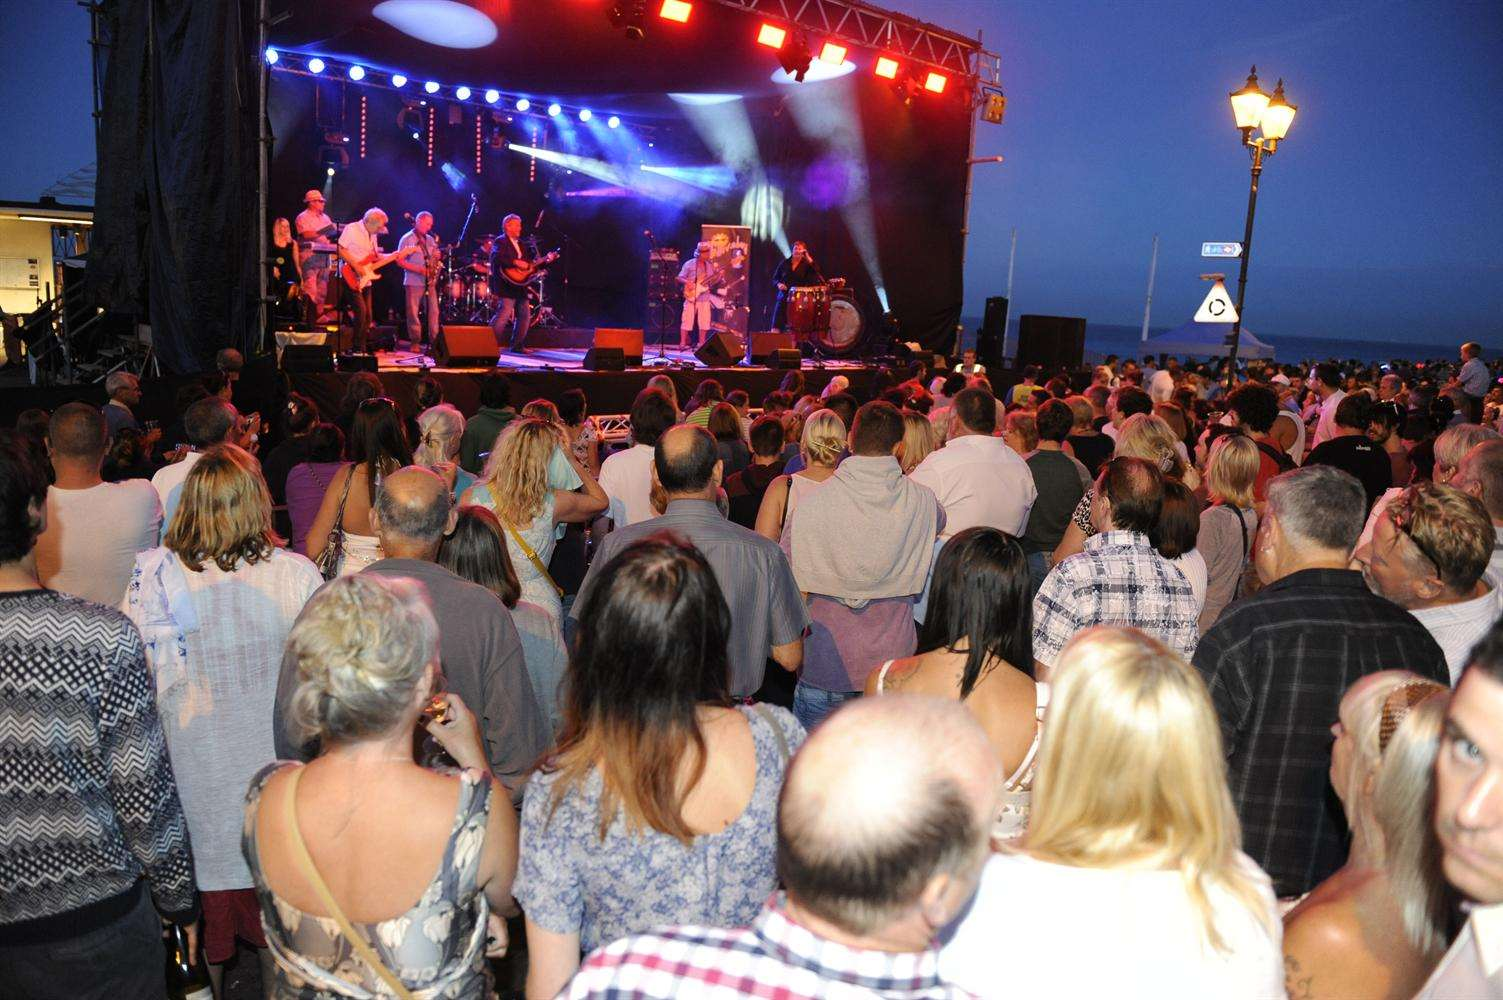 The Party on the Prom is always popular. This year The Kingsdown Band and Bad Penny will play